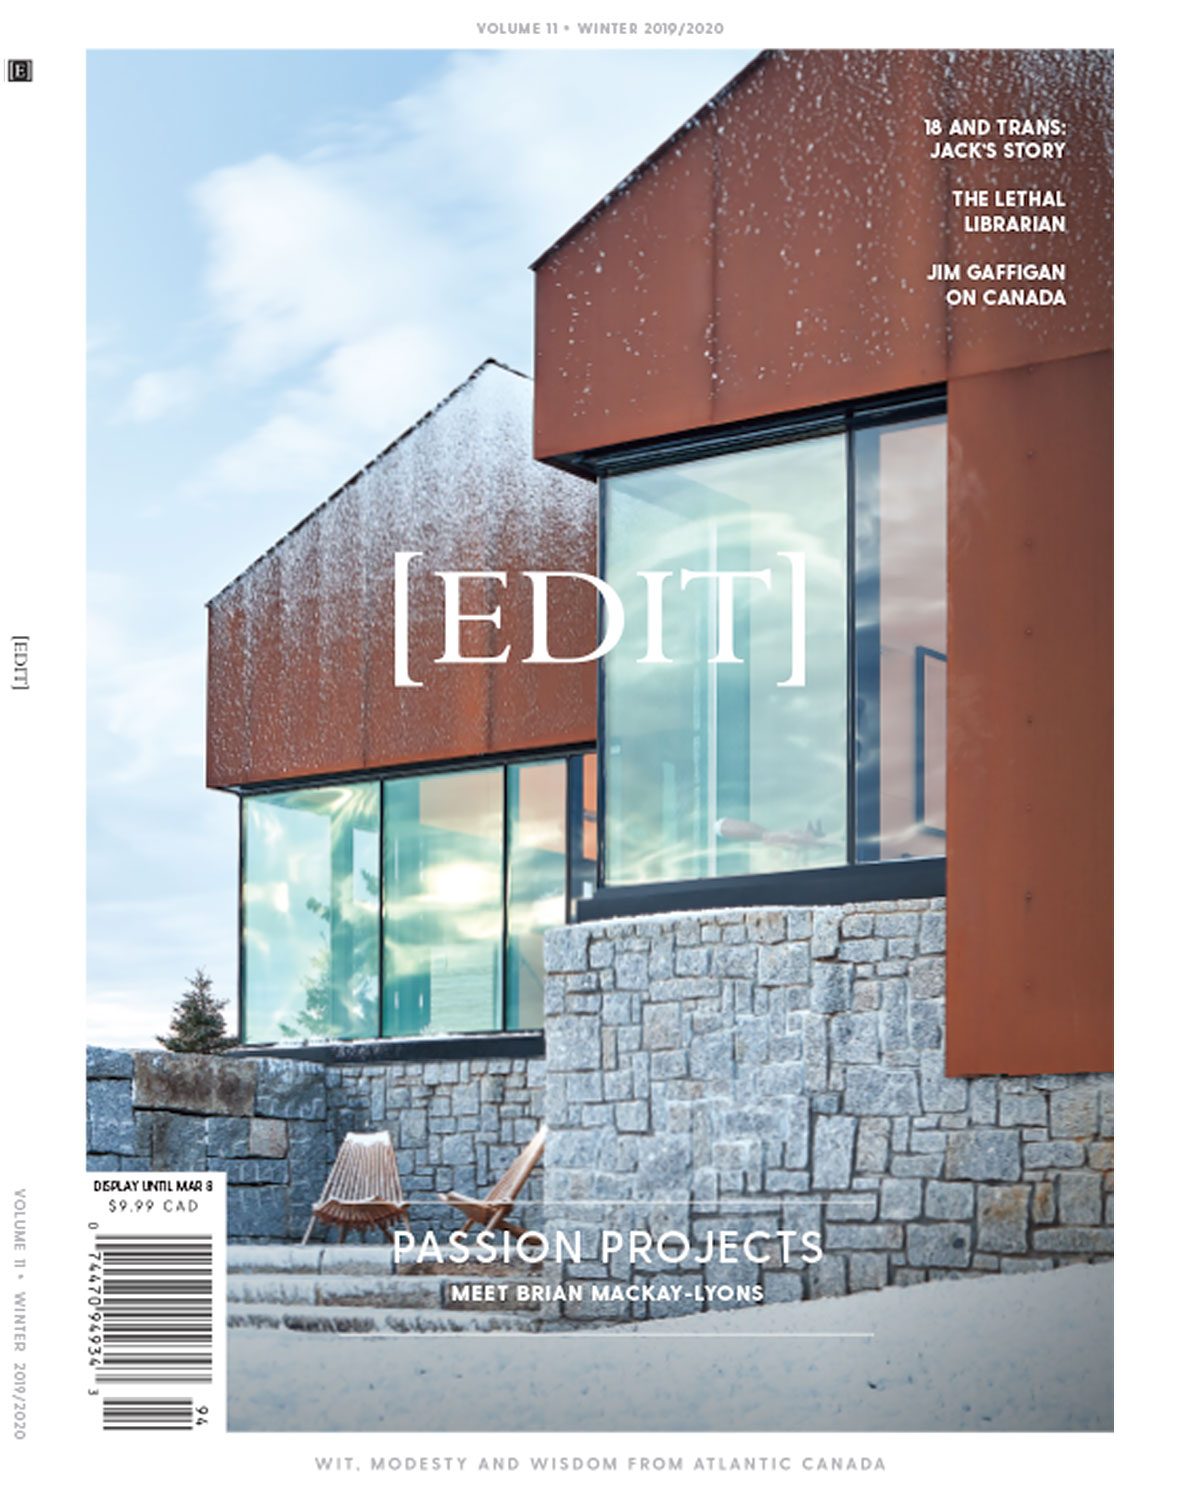 MaritimeEdit_winter2019_COVER_new2-1